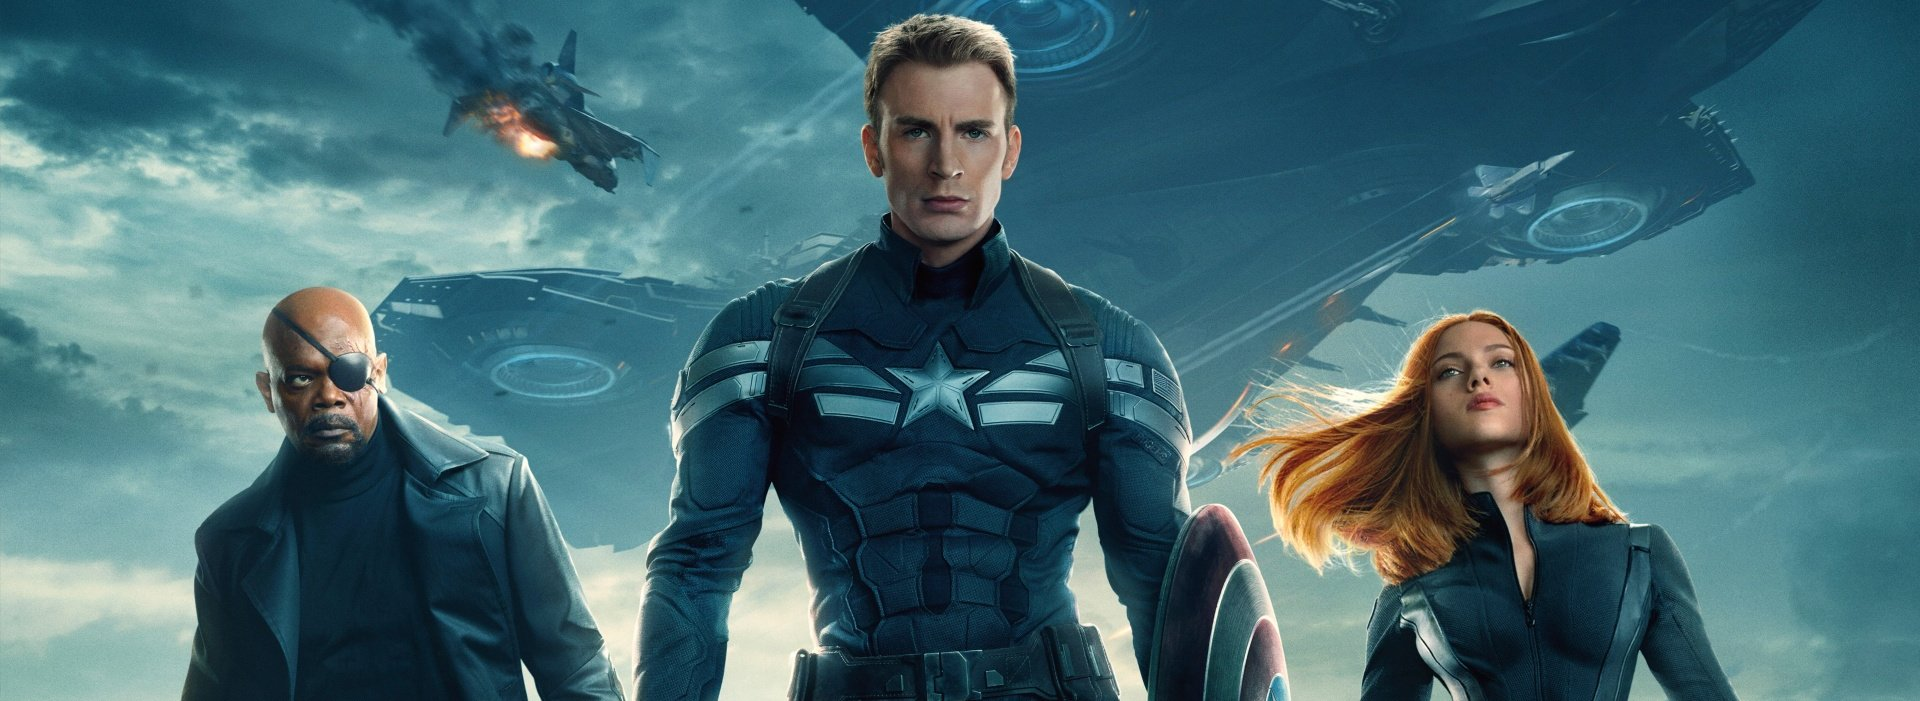 Film: Captain America: The Winter Soldier feature image